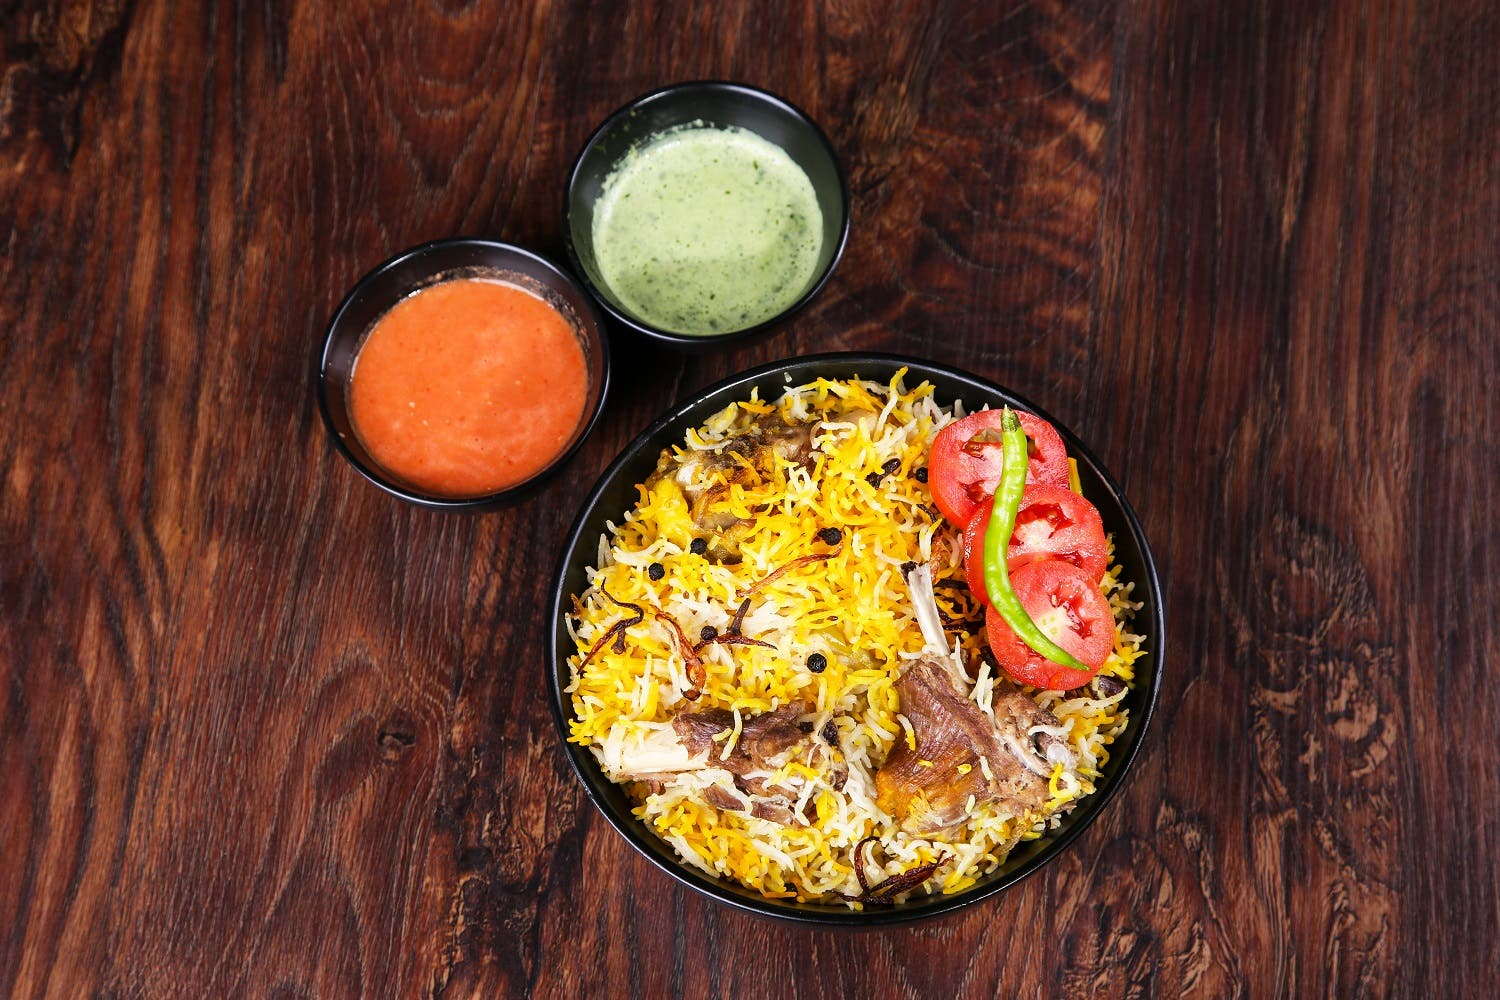 Biryani is a mixed rice dish from the Indian subcontinent. It is made with spices, rice, lentils, meat and vegetables. (Shutterstock)